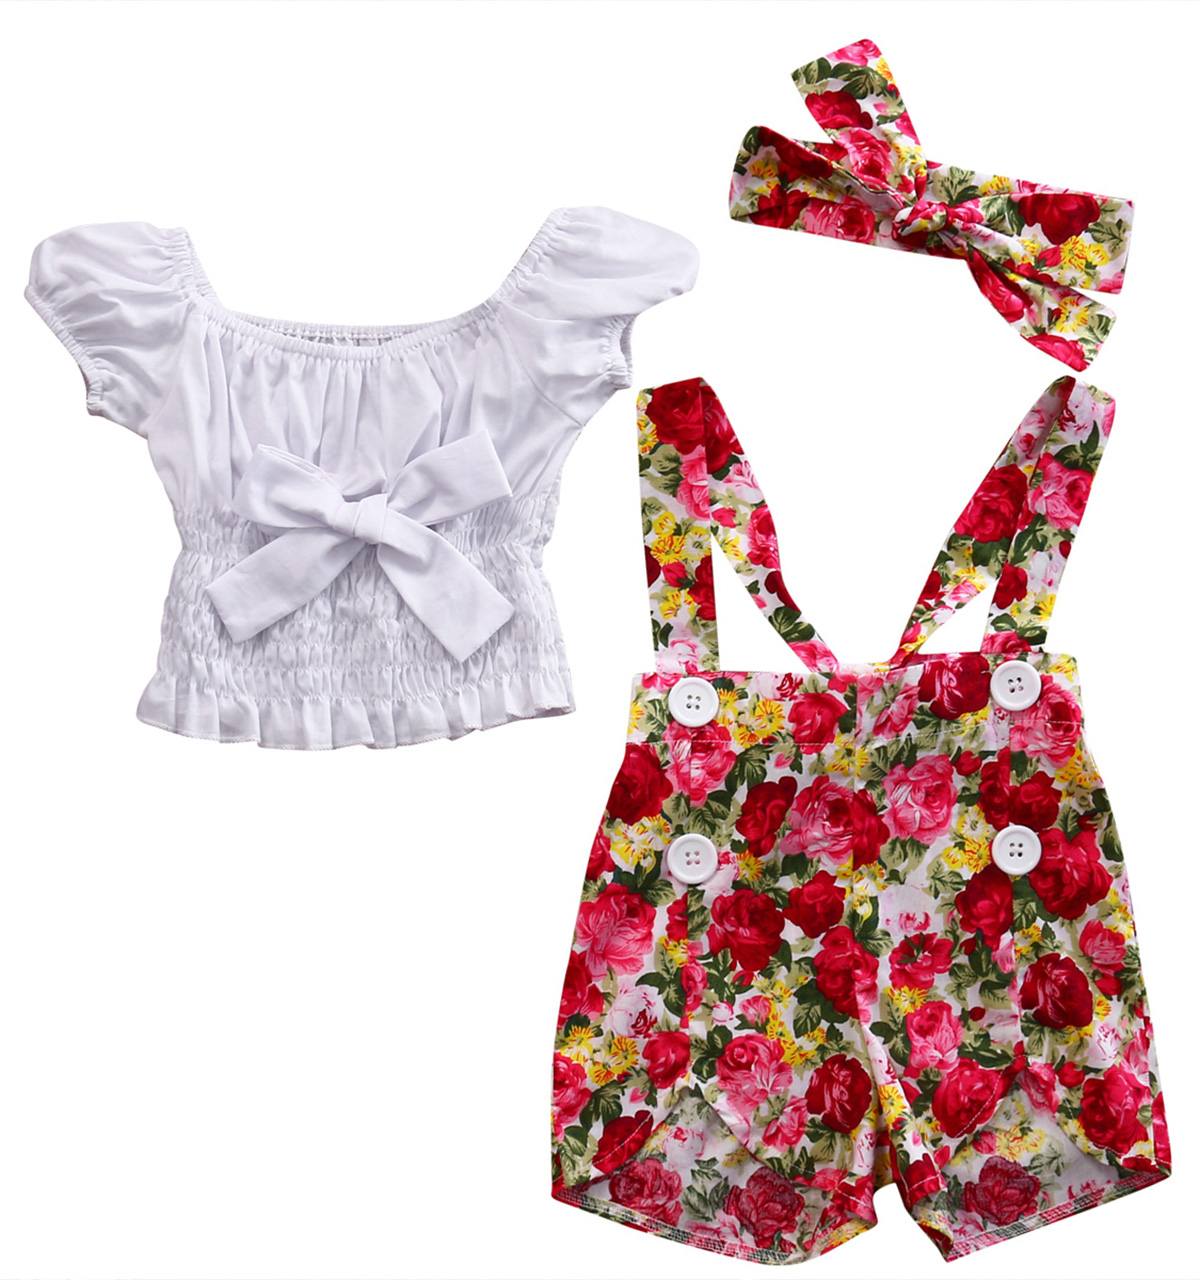 Summer Toddler Girls Cotton Sleeveless Tops Pants Floral Outfits Set Clothes